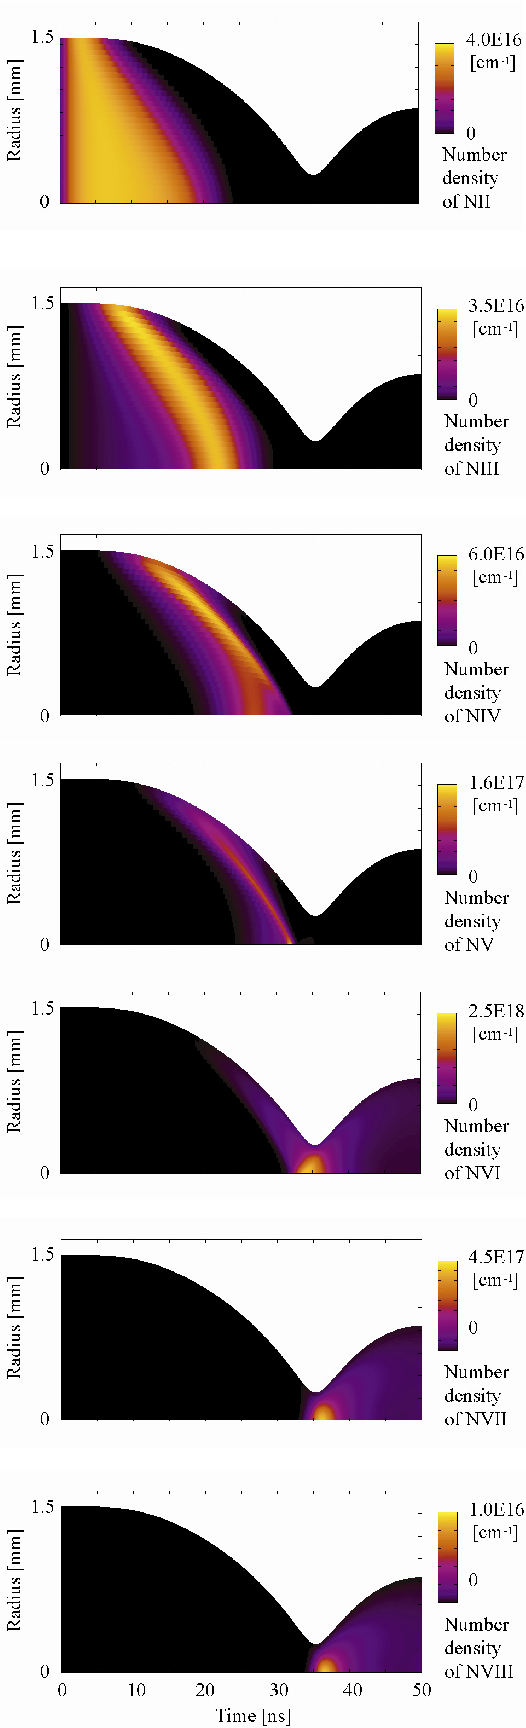 Fig. 4 Time evolution of respective nitrogen ion density distributions. Peak discharge current amplitude: 18 kA. Pulse width of discharge current: 70 ns. Initial number density of NII: 4 × 1016 cm-3.